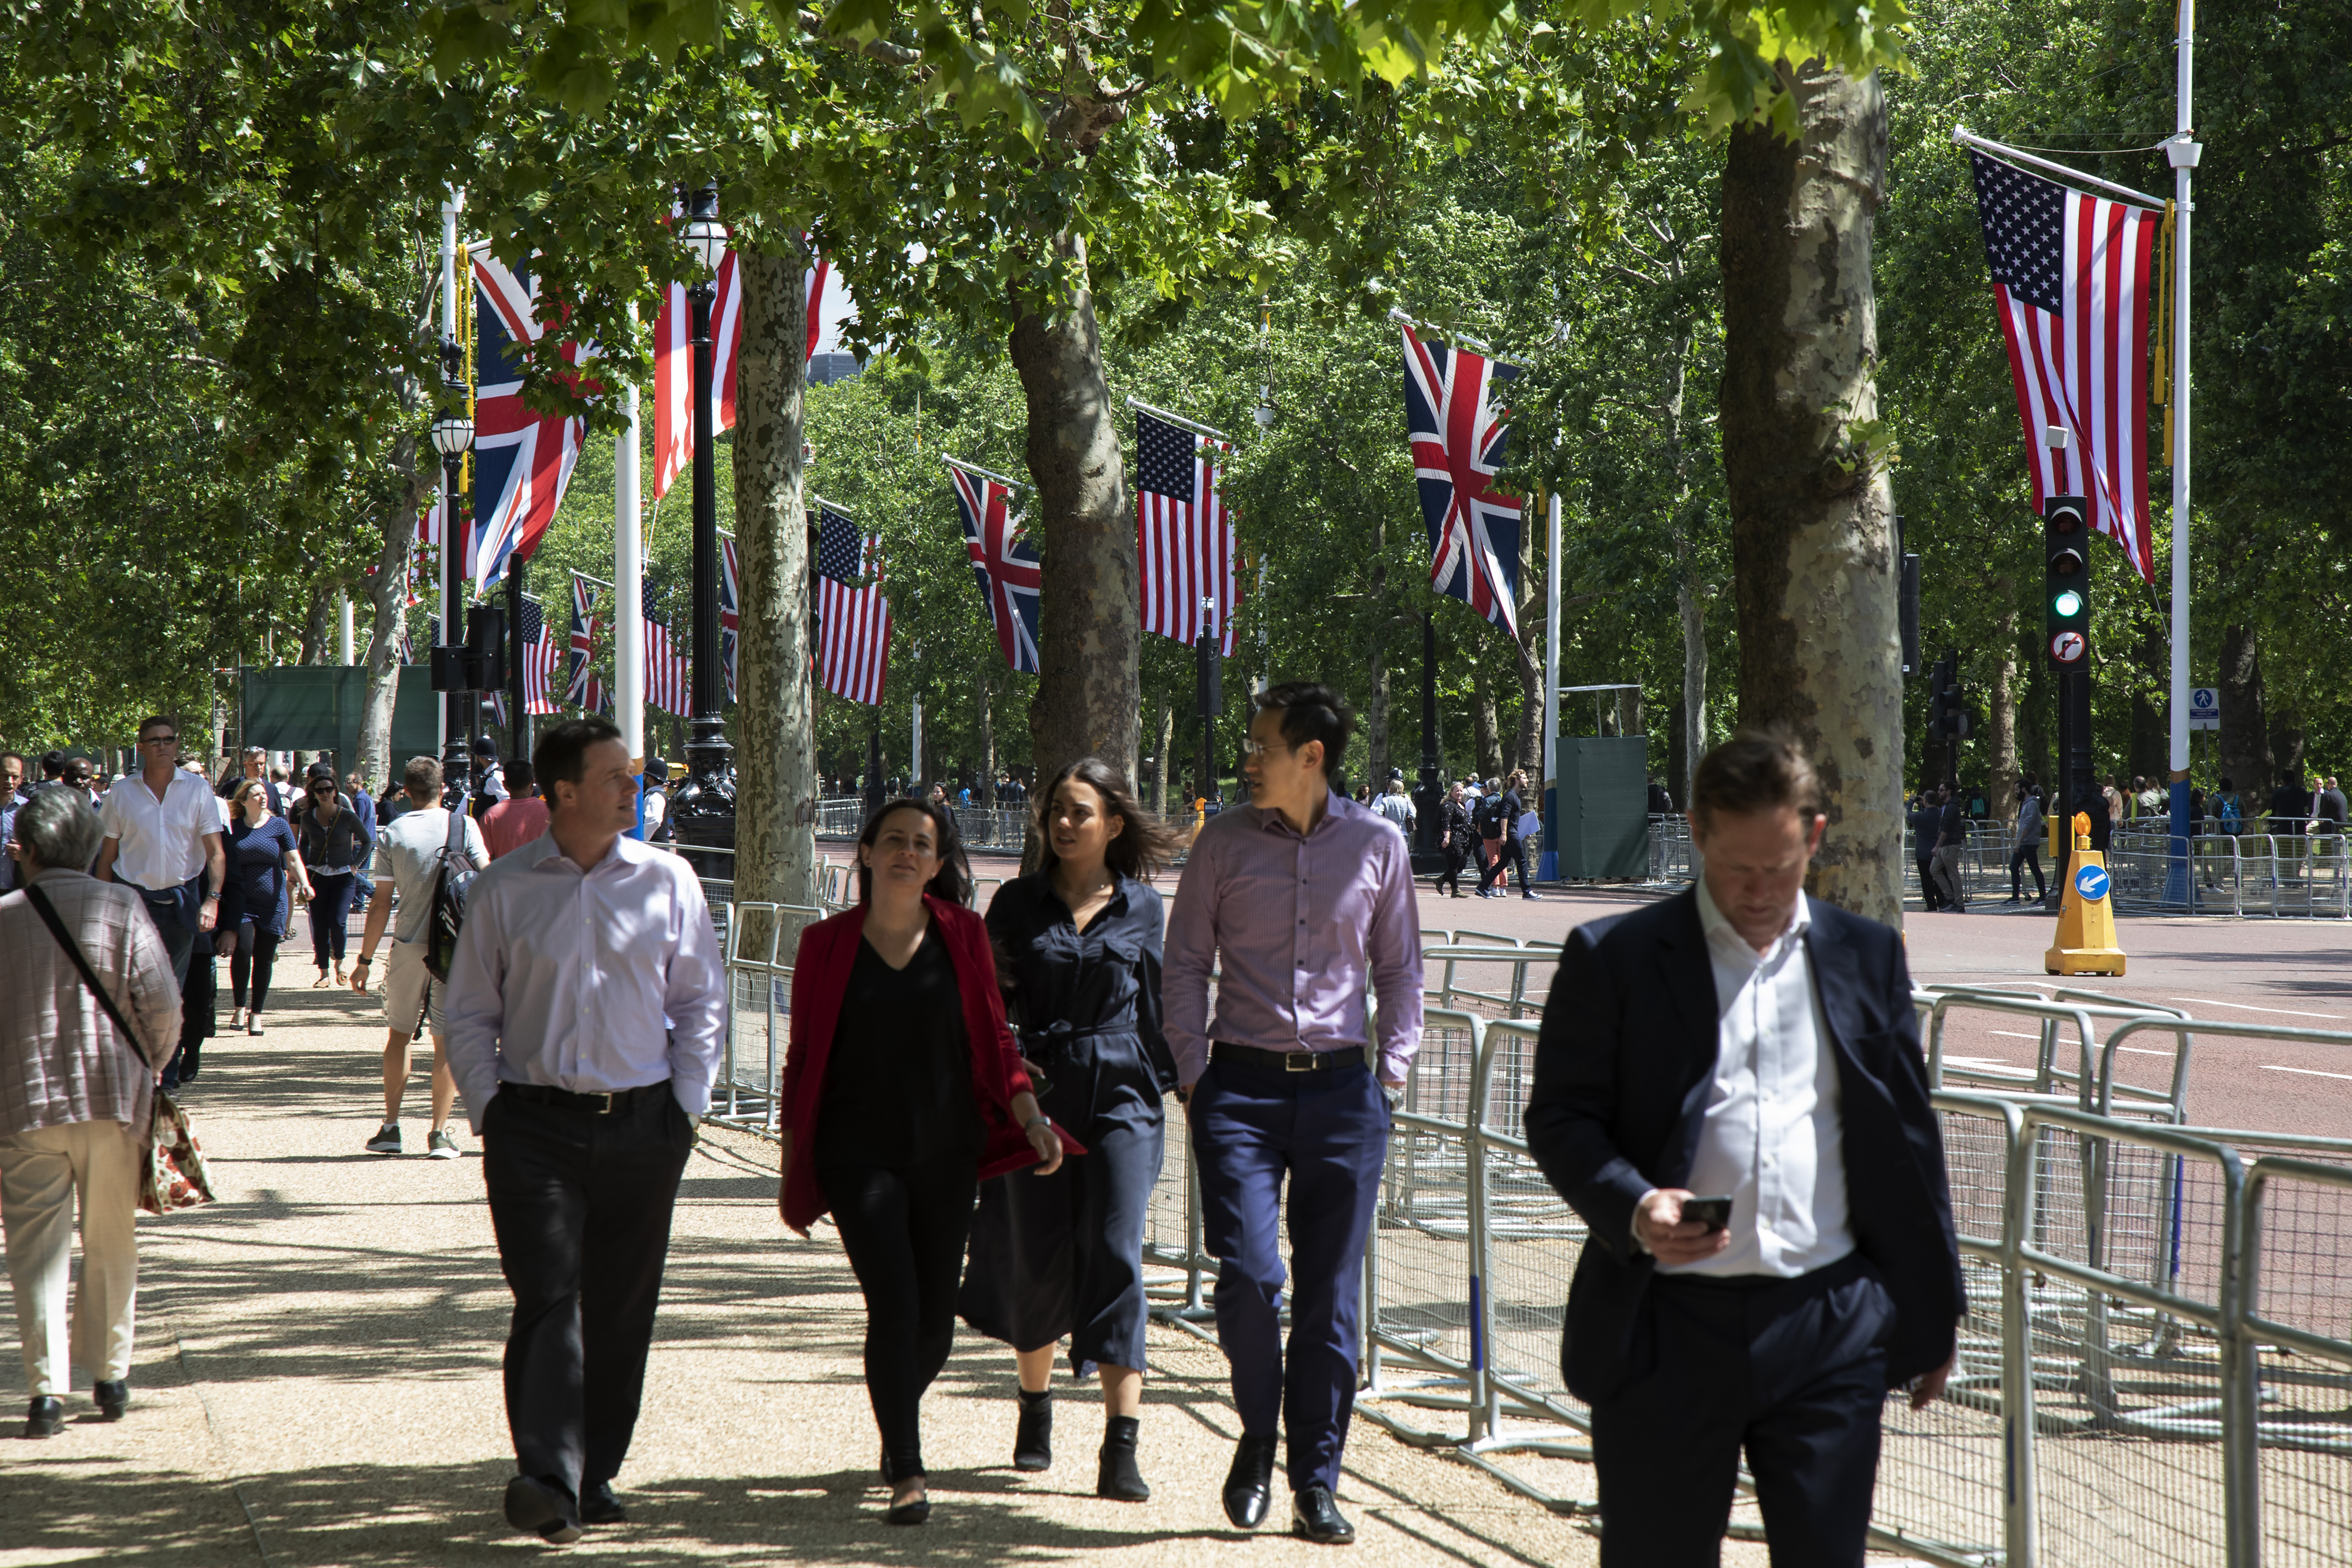 US and UK flags line London's Mall during Donald Trump's state visit.